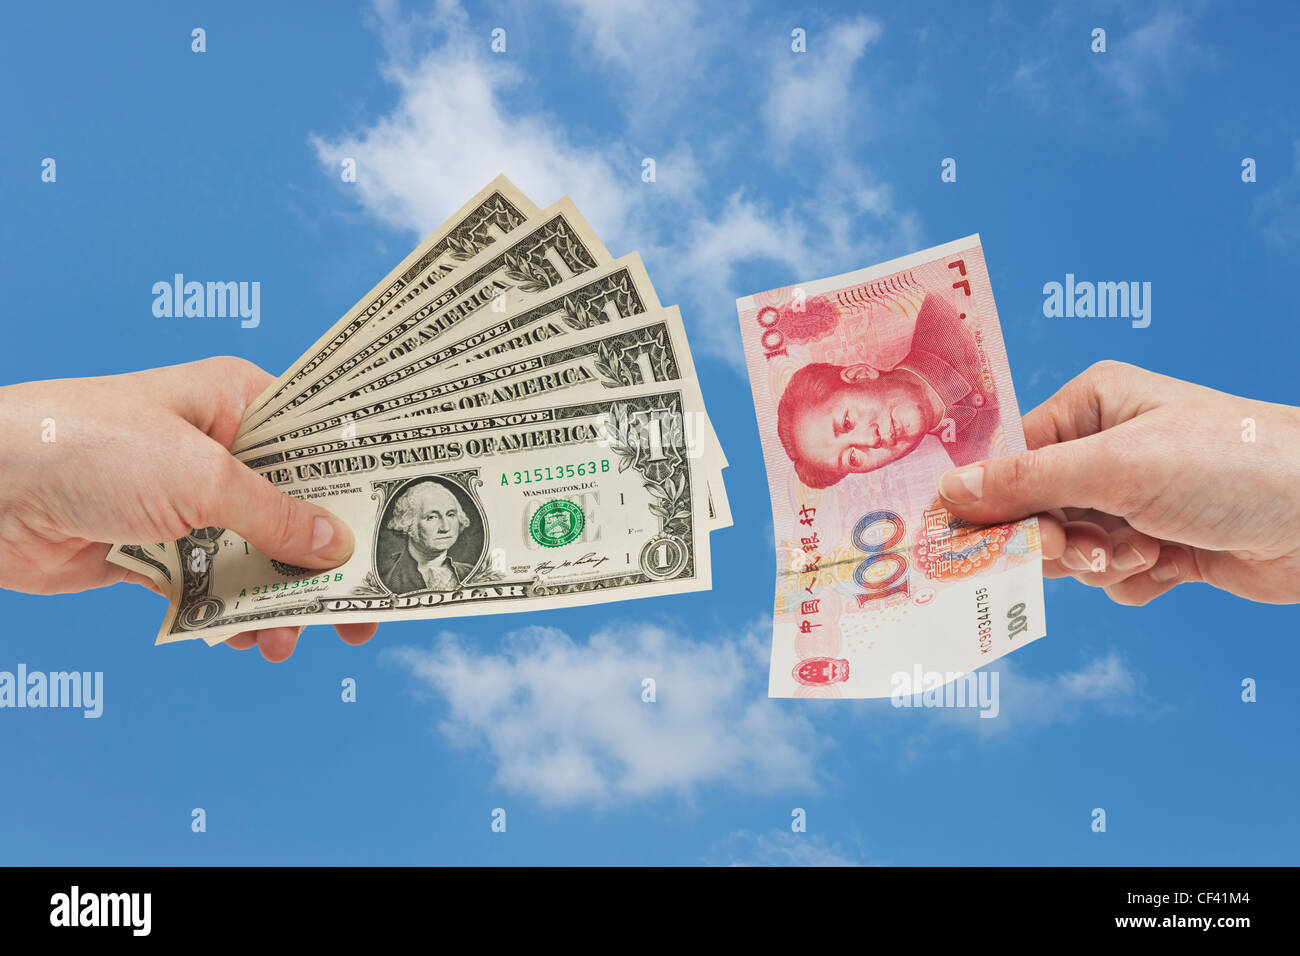 Five 1 U.S. Dollar bills are held in the hand. At the other side a 100 yuan bill is held in the hand, background - Stock Image